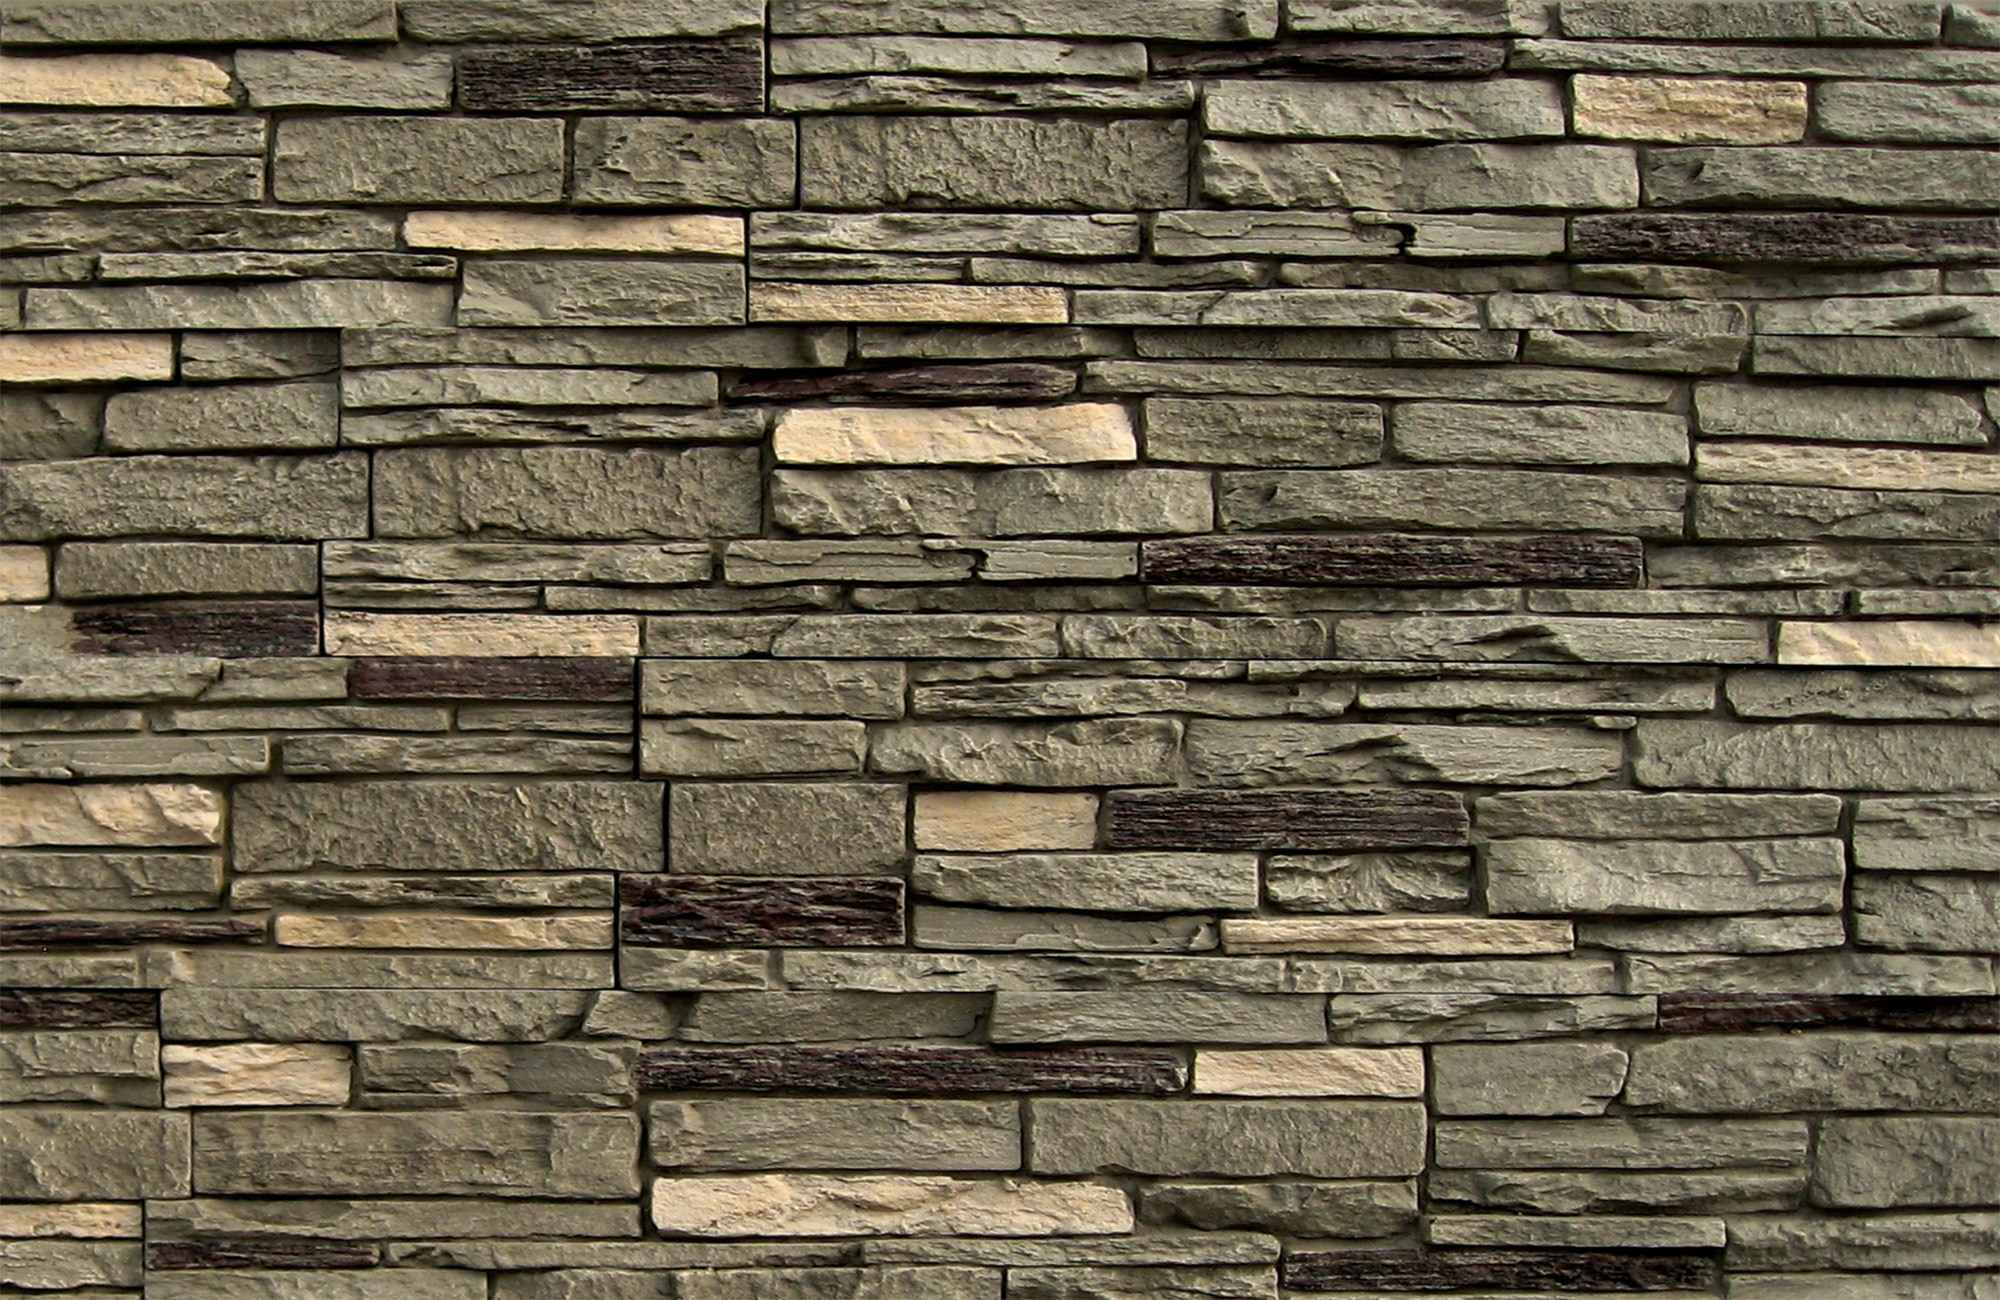 8 Great Ways to Decorate Your Home With Faux Stone | Real Detroit Weekly